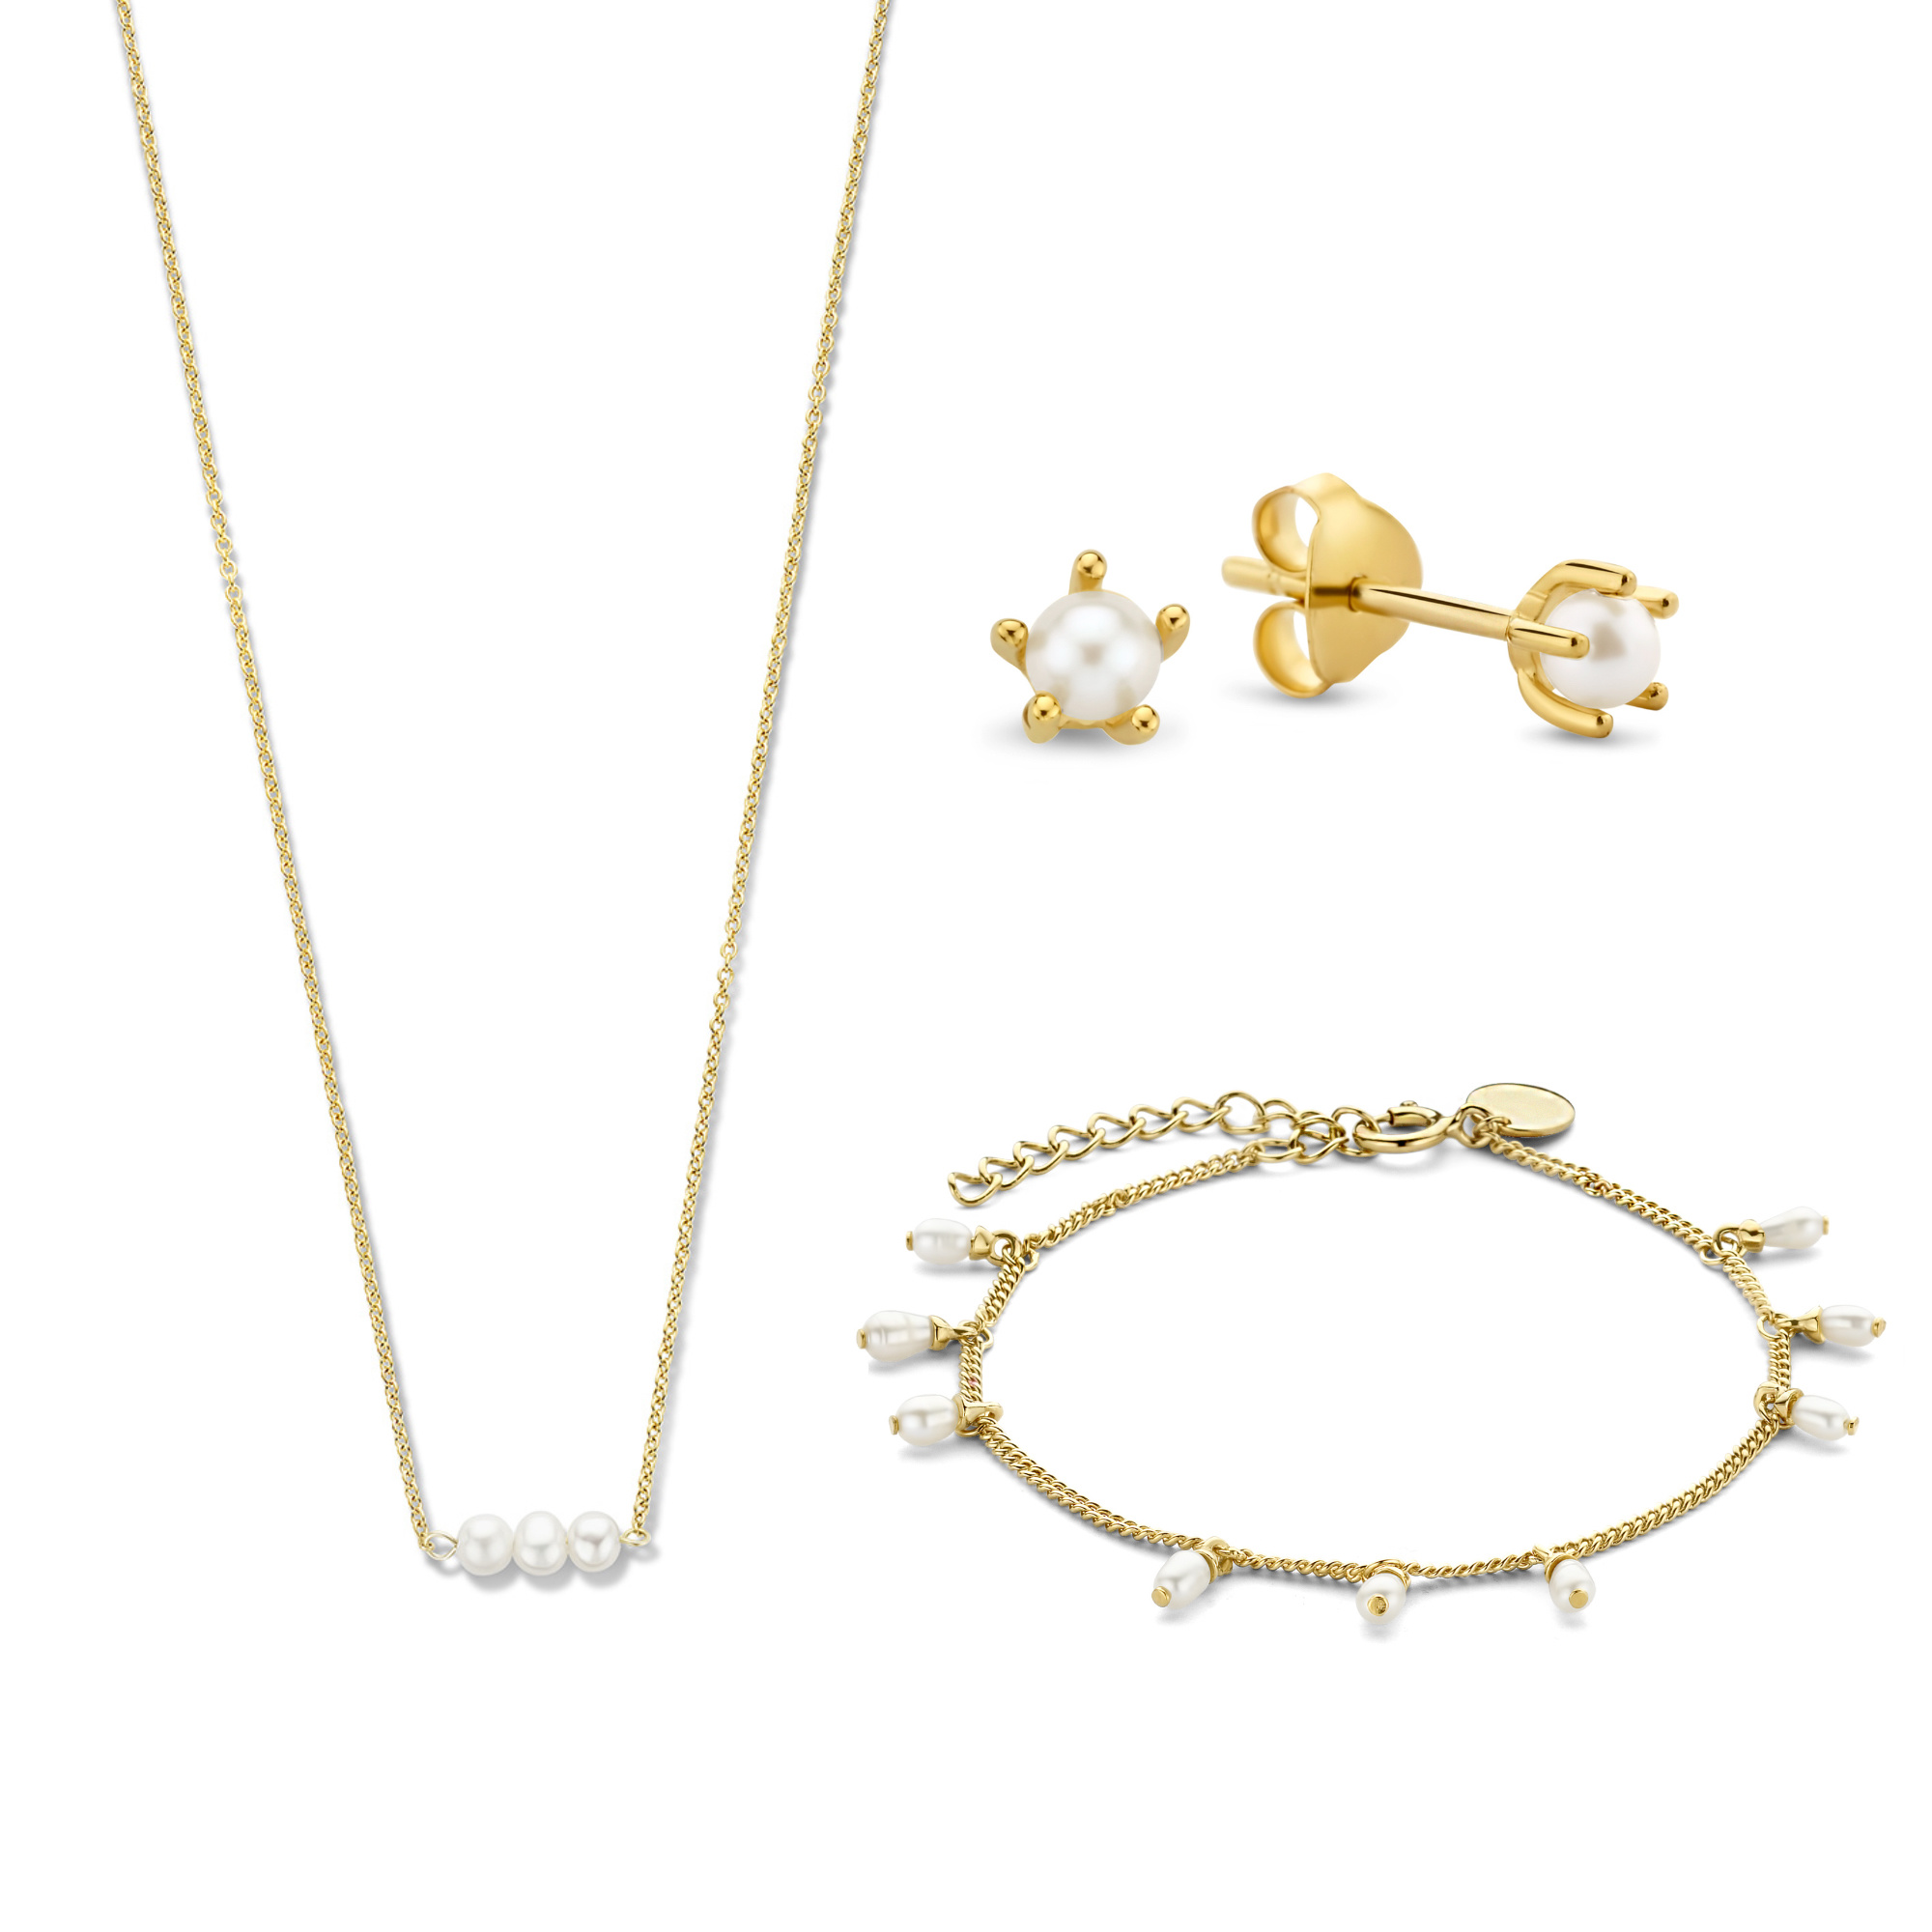 Violet Hamden Violet's Gift 925 sterling silver gold colored set necklace, bracelet and drop earrings with freshwater pearls